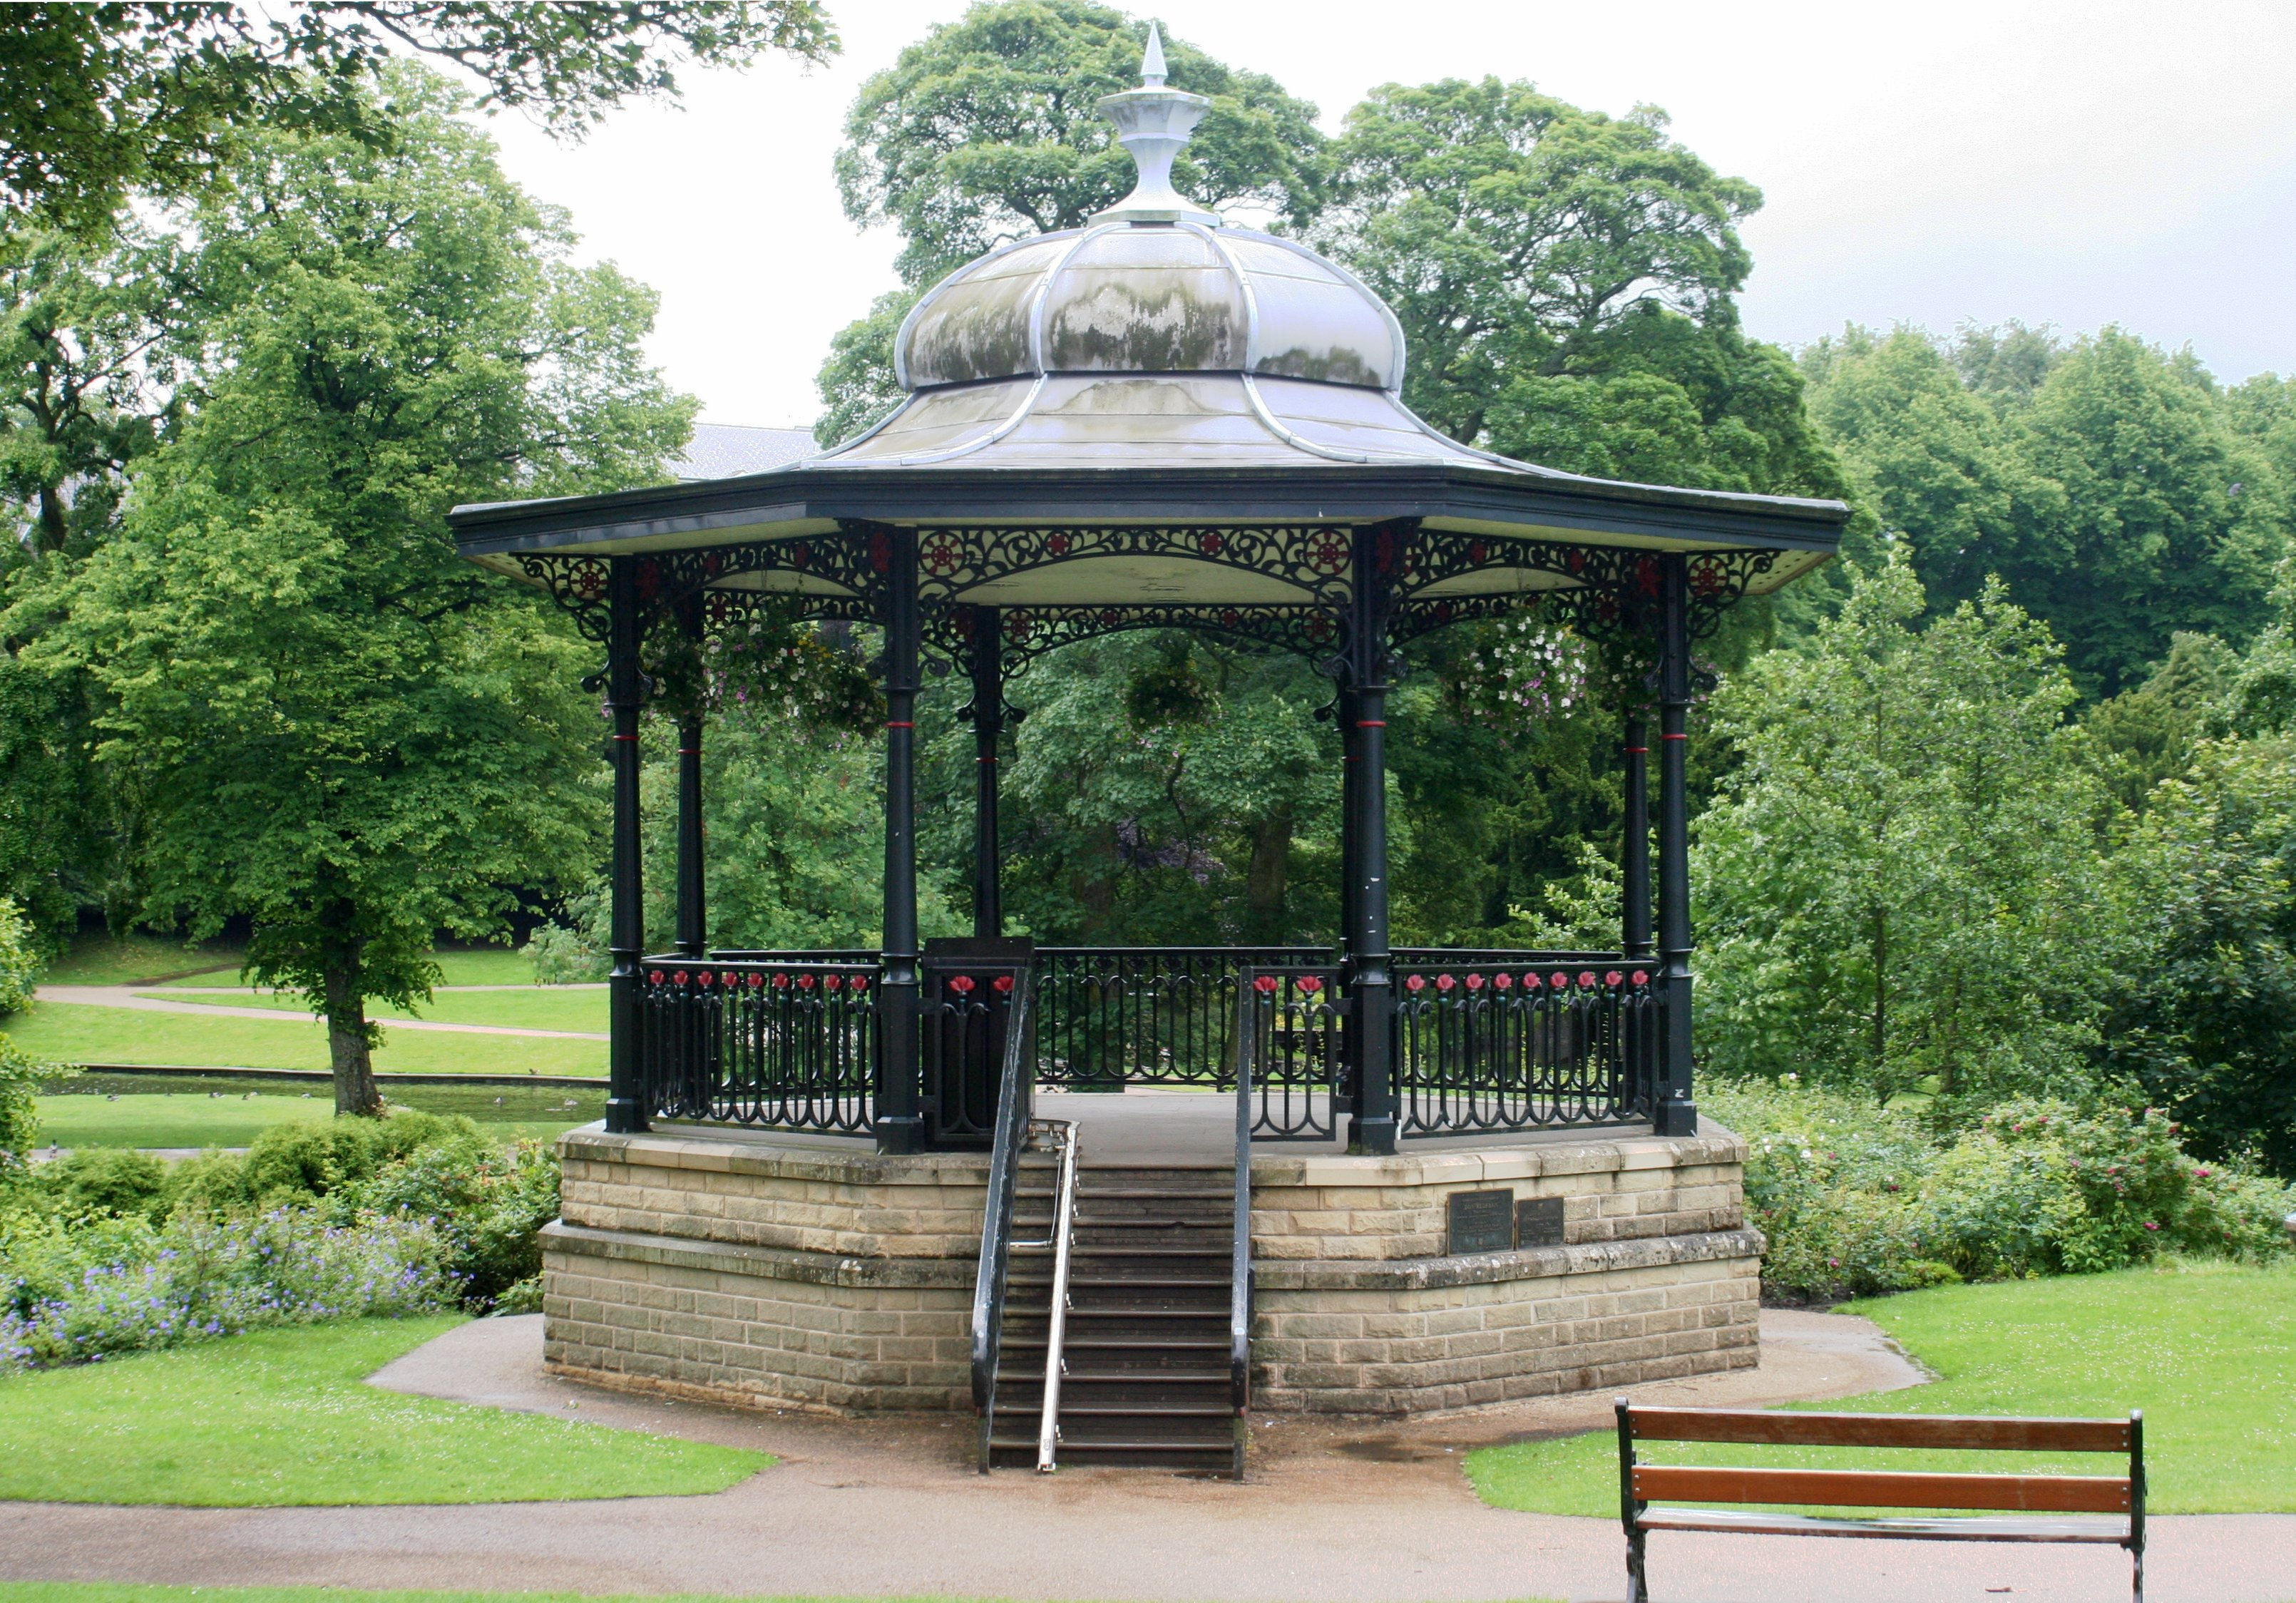 file buxton pavilion gardens wikimedia commons. Black Bedroom Furniture Sets. Home Design Ideas